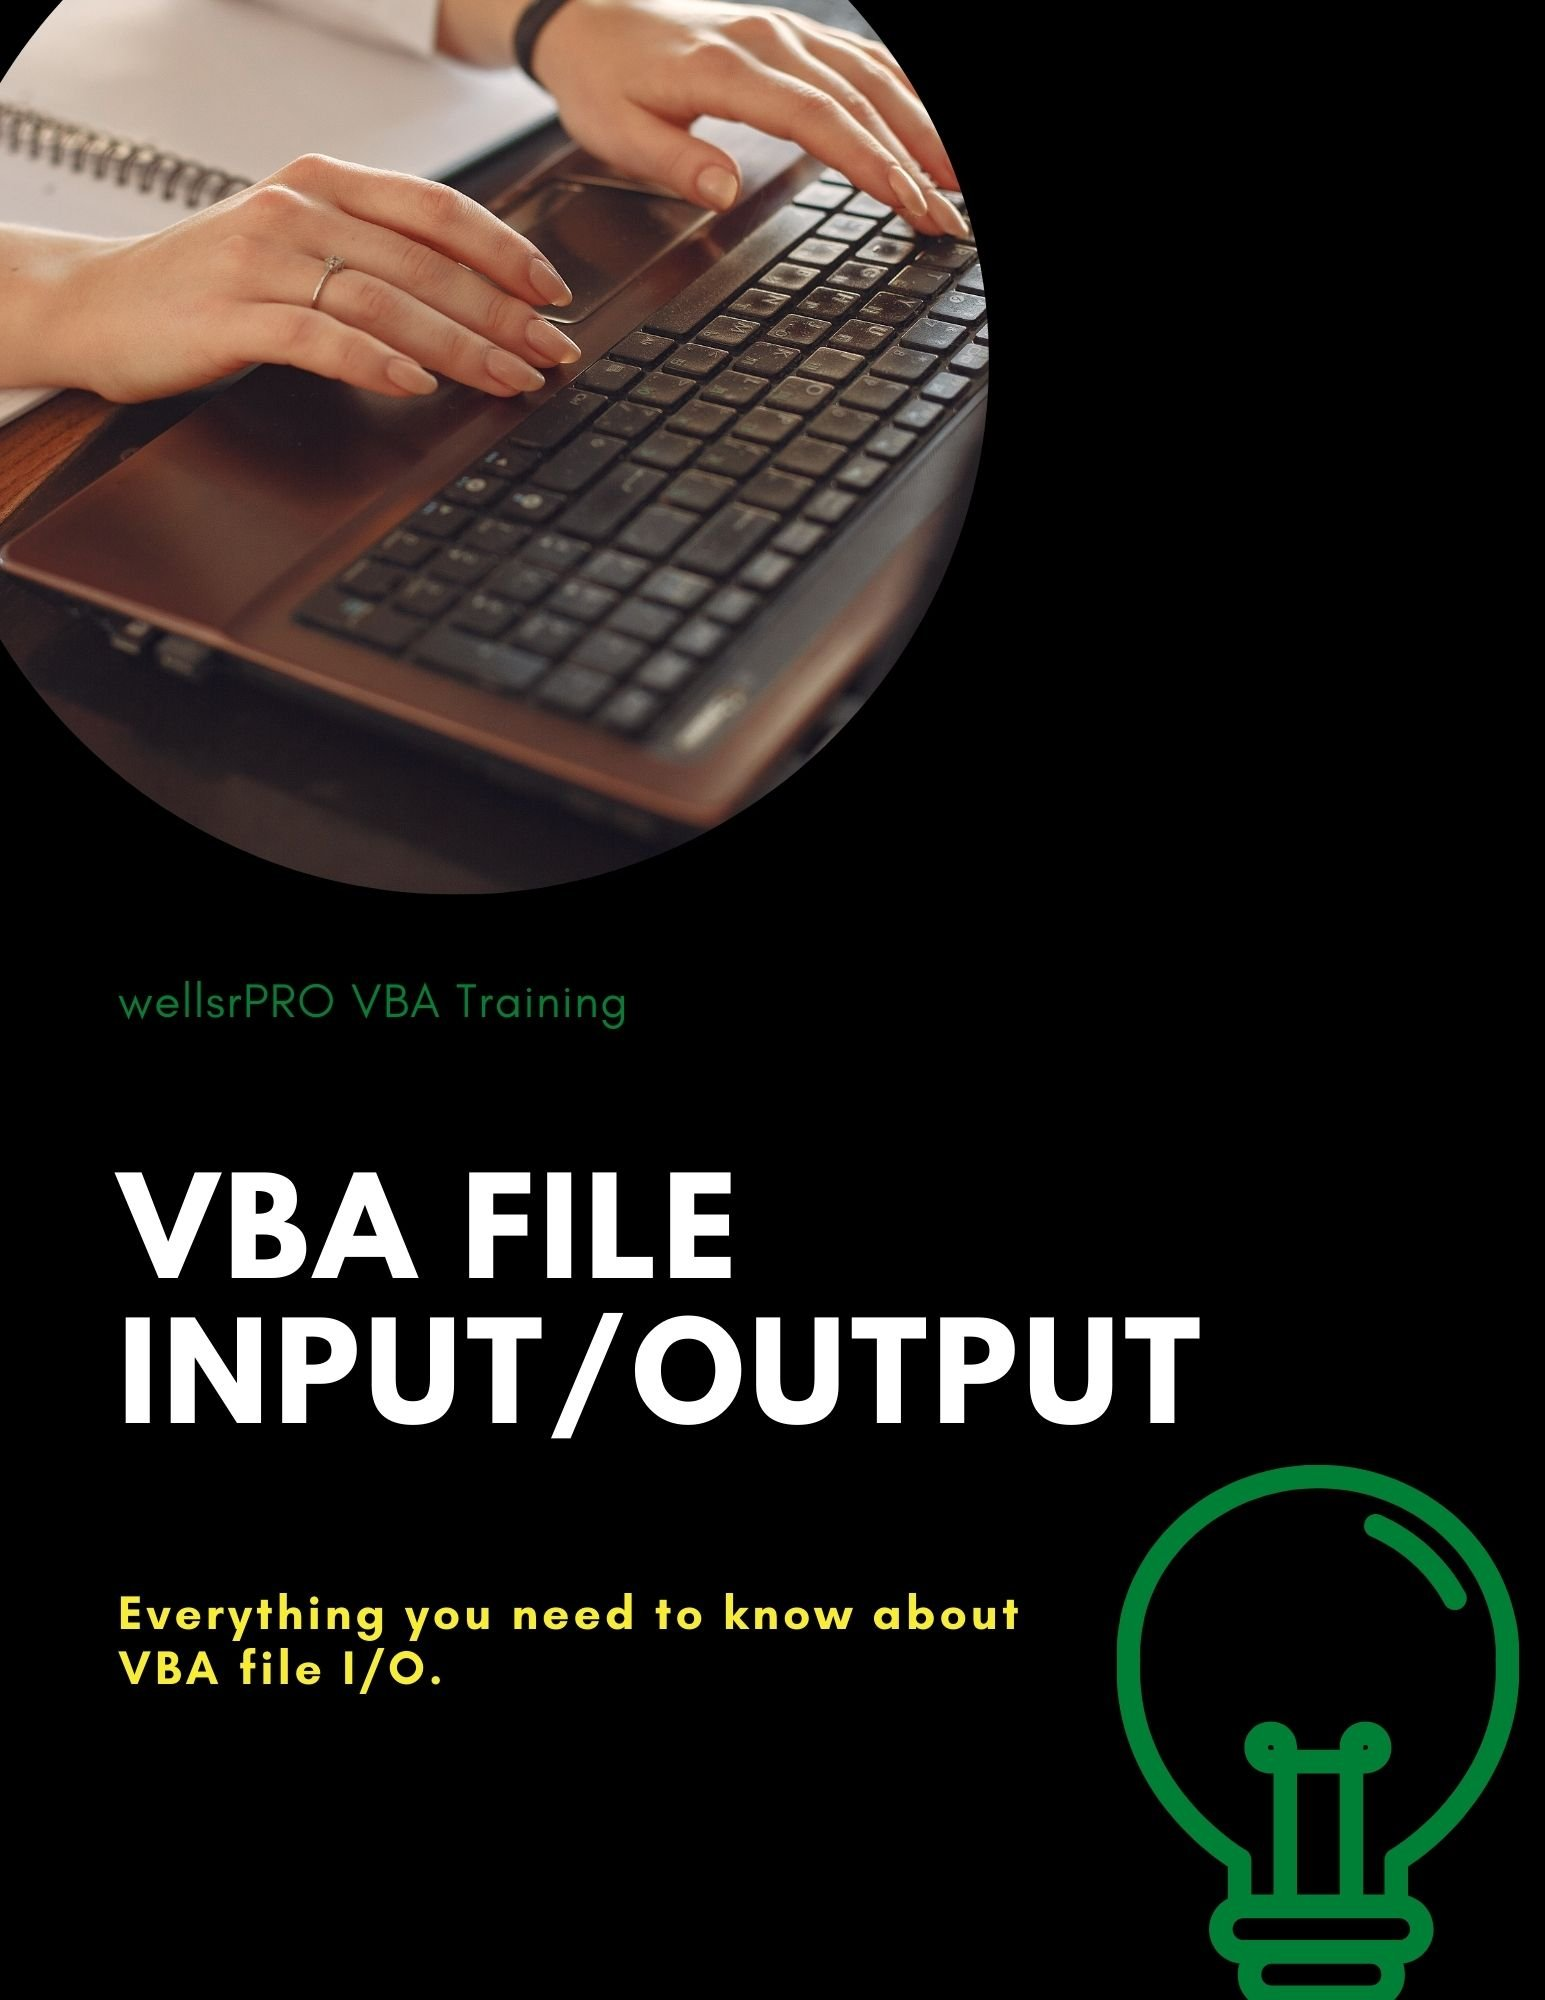 Everything you need to know about VBA file I/O